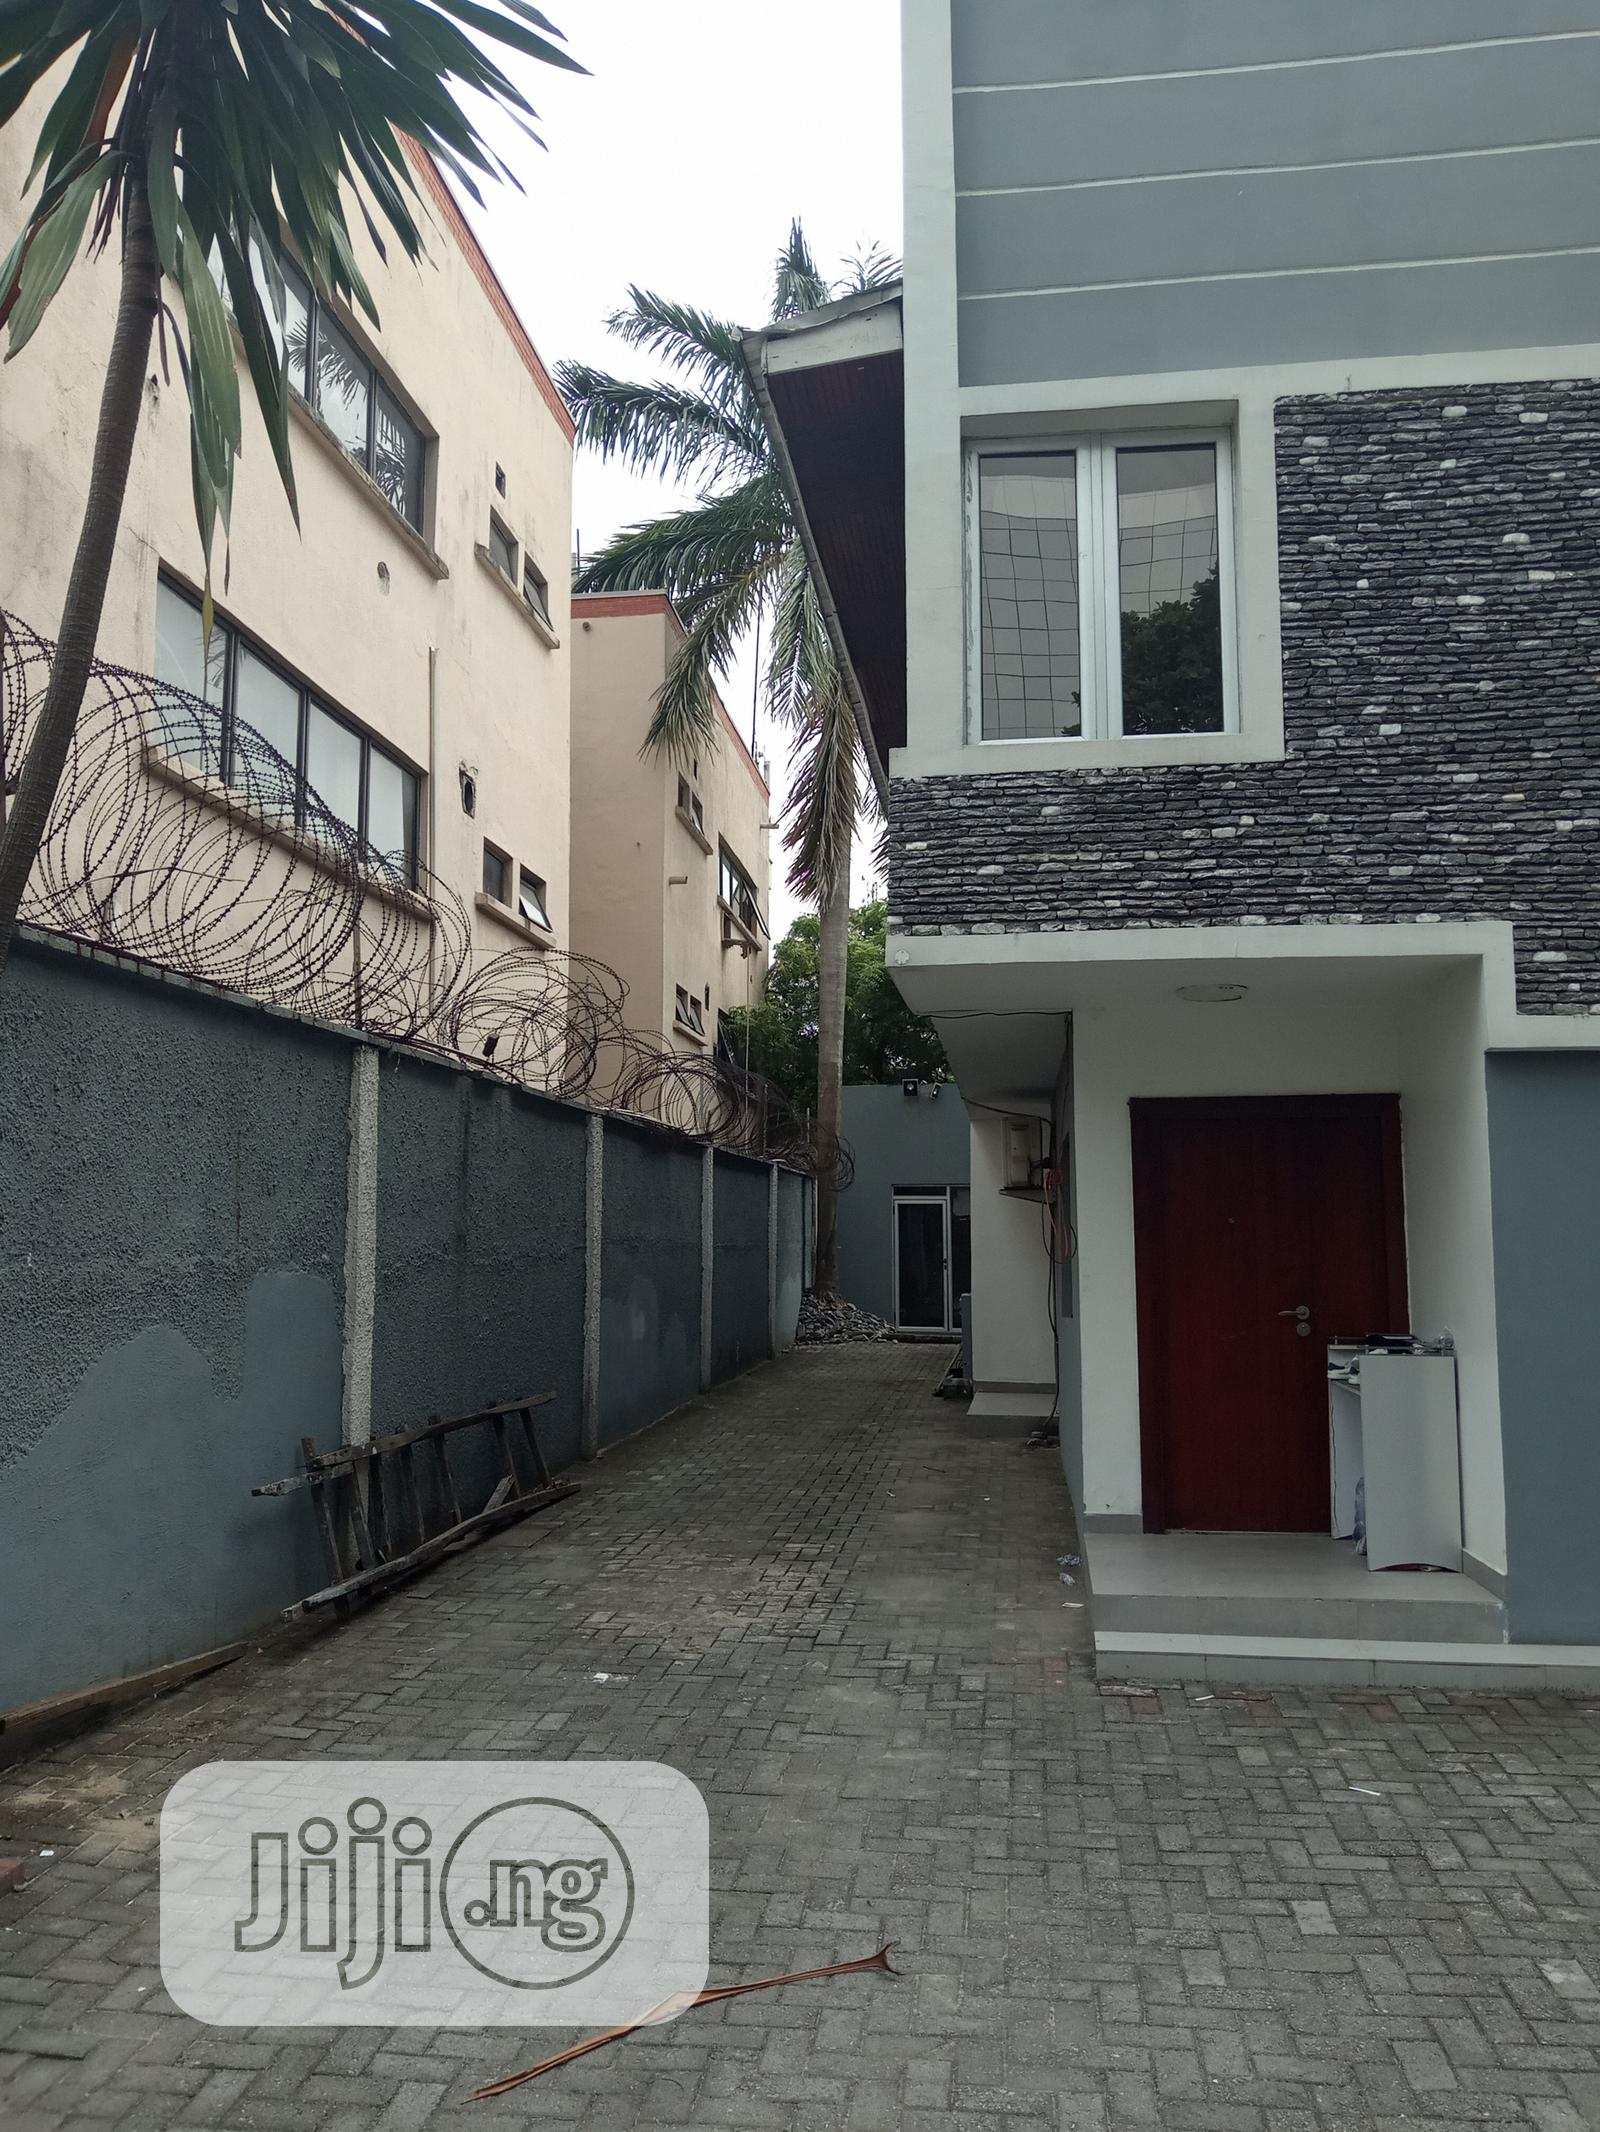 7 Bedrooms Fully Detached Duplex To Let At Victoria Island